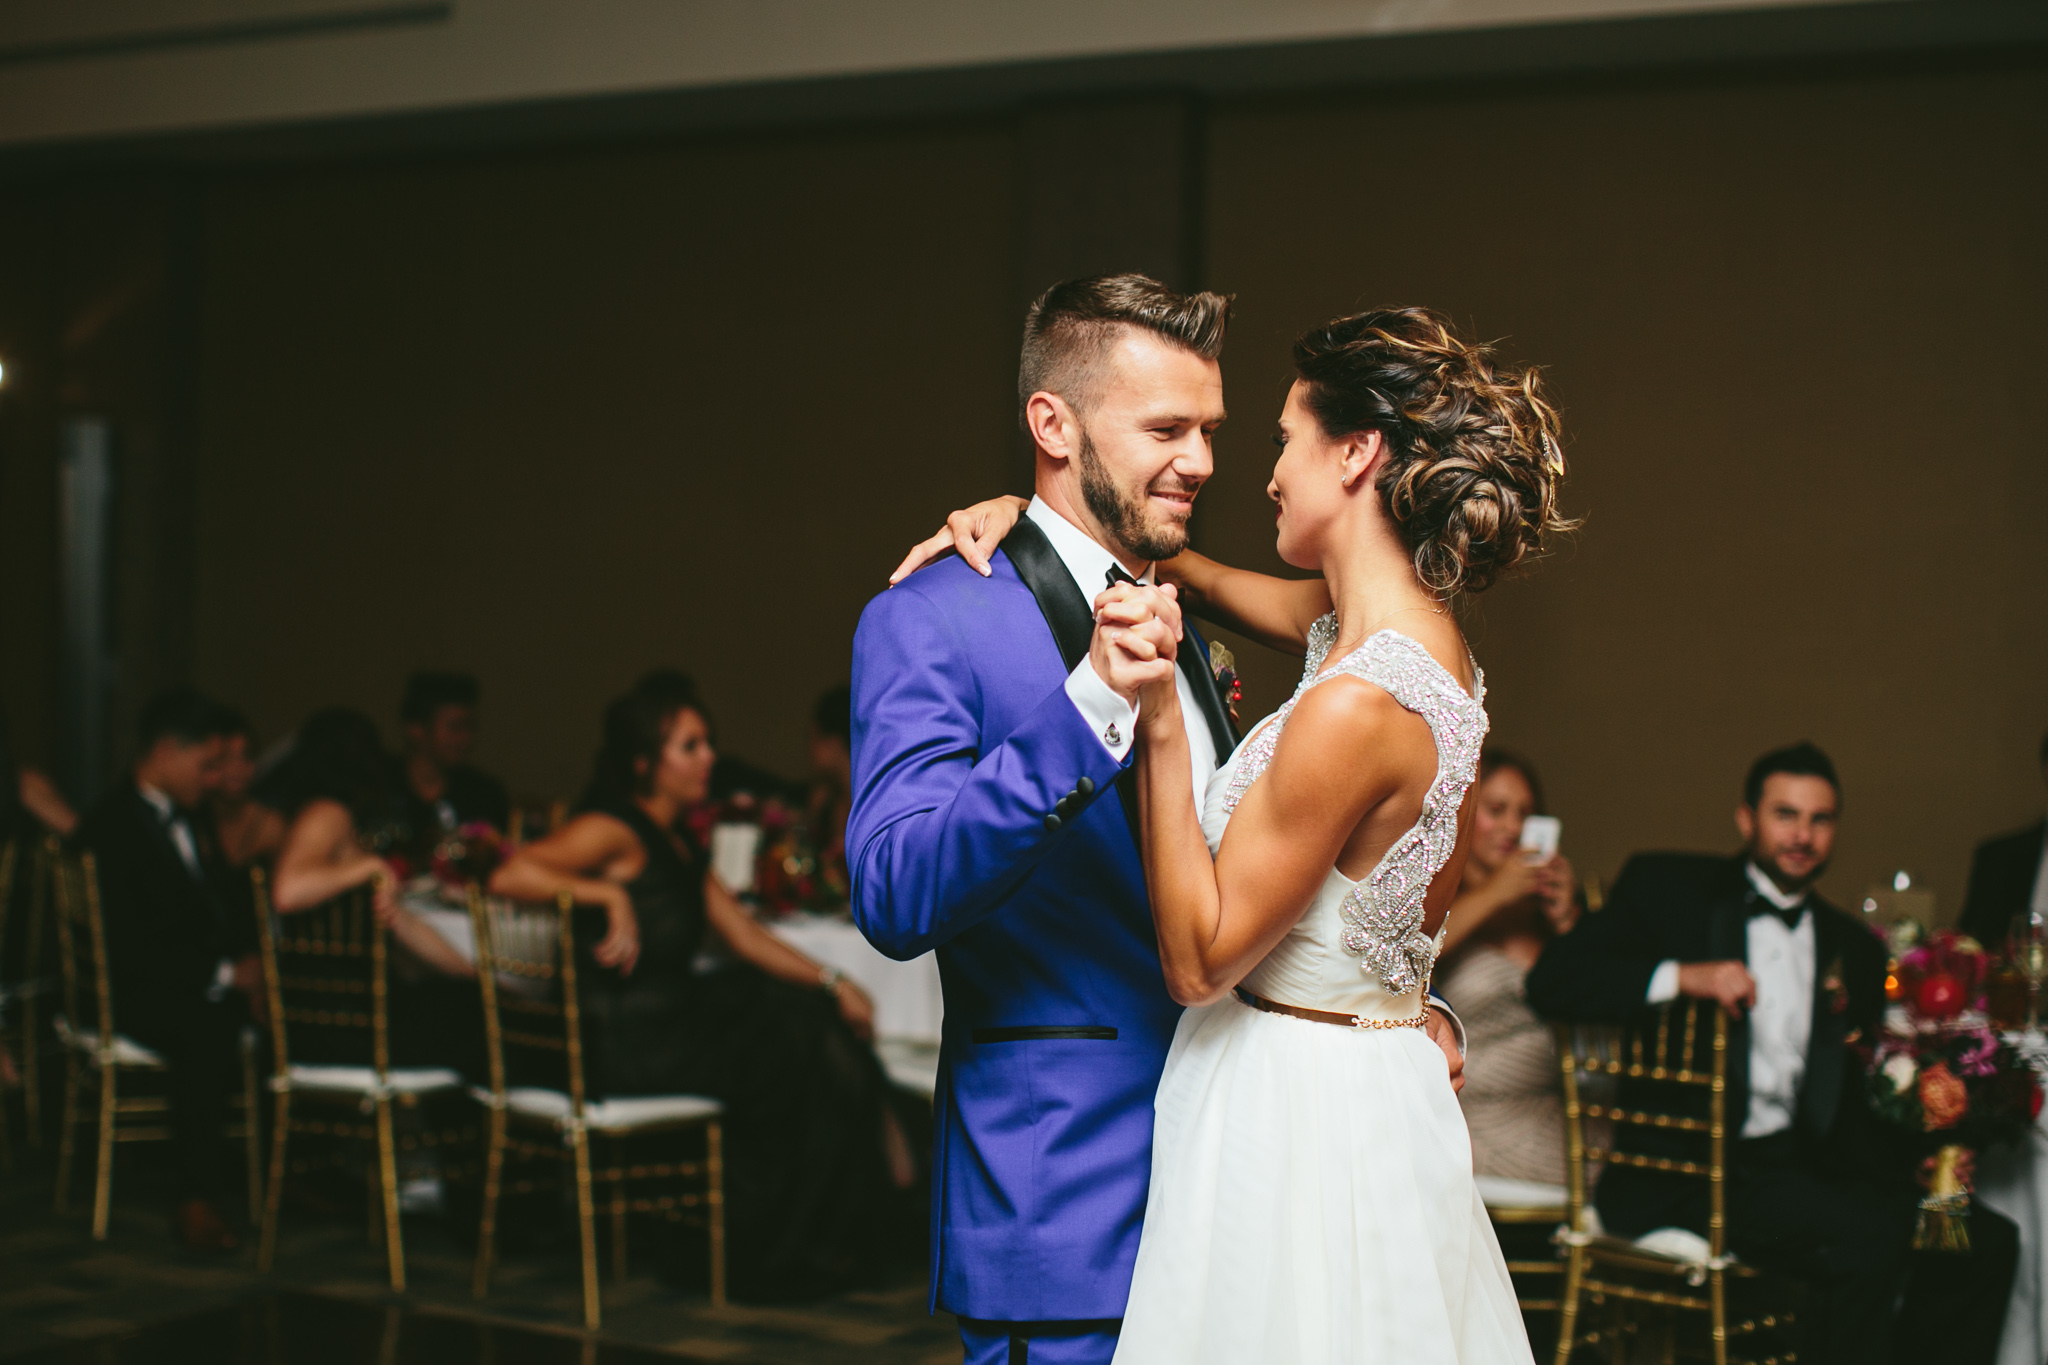 Brianna+Jeff-WEDDING_KellyBoitanoPhotography20151219_0145